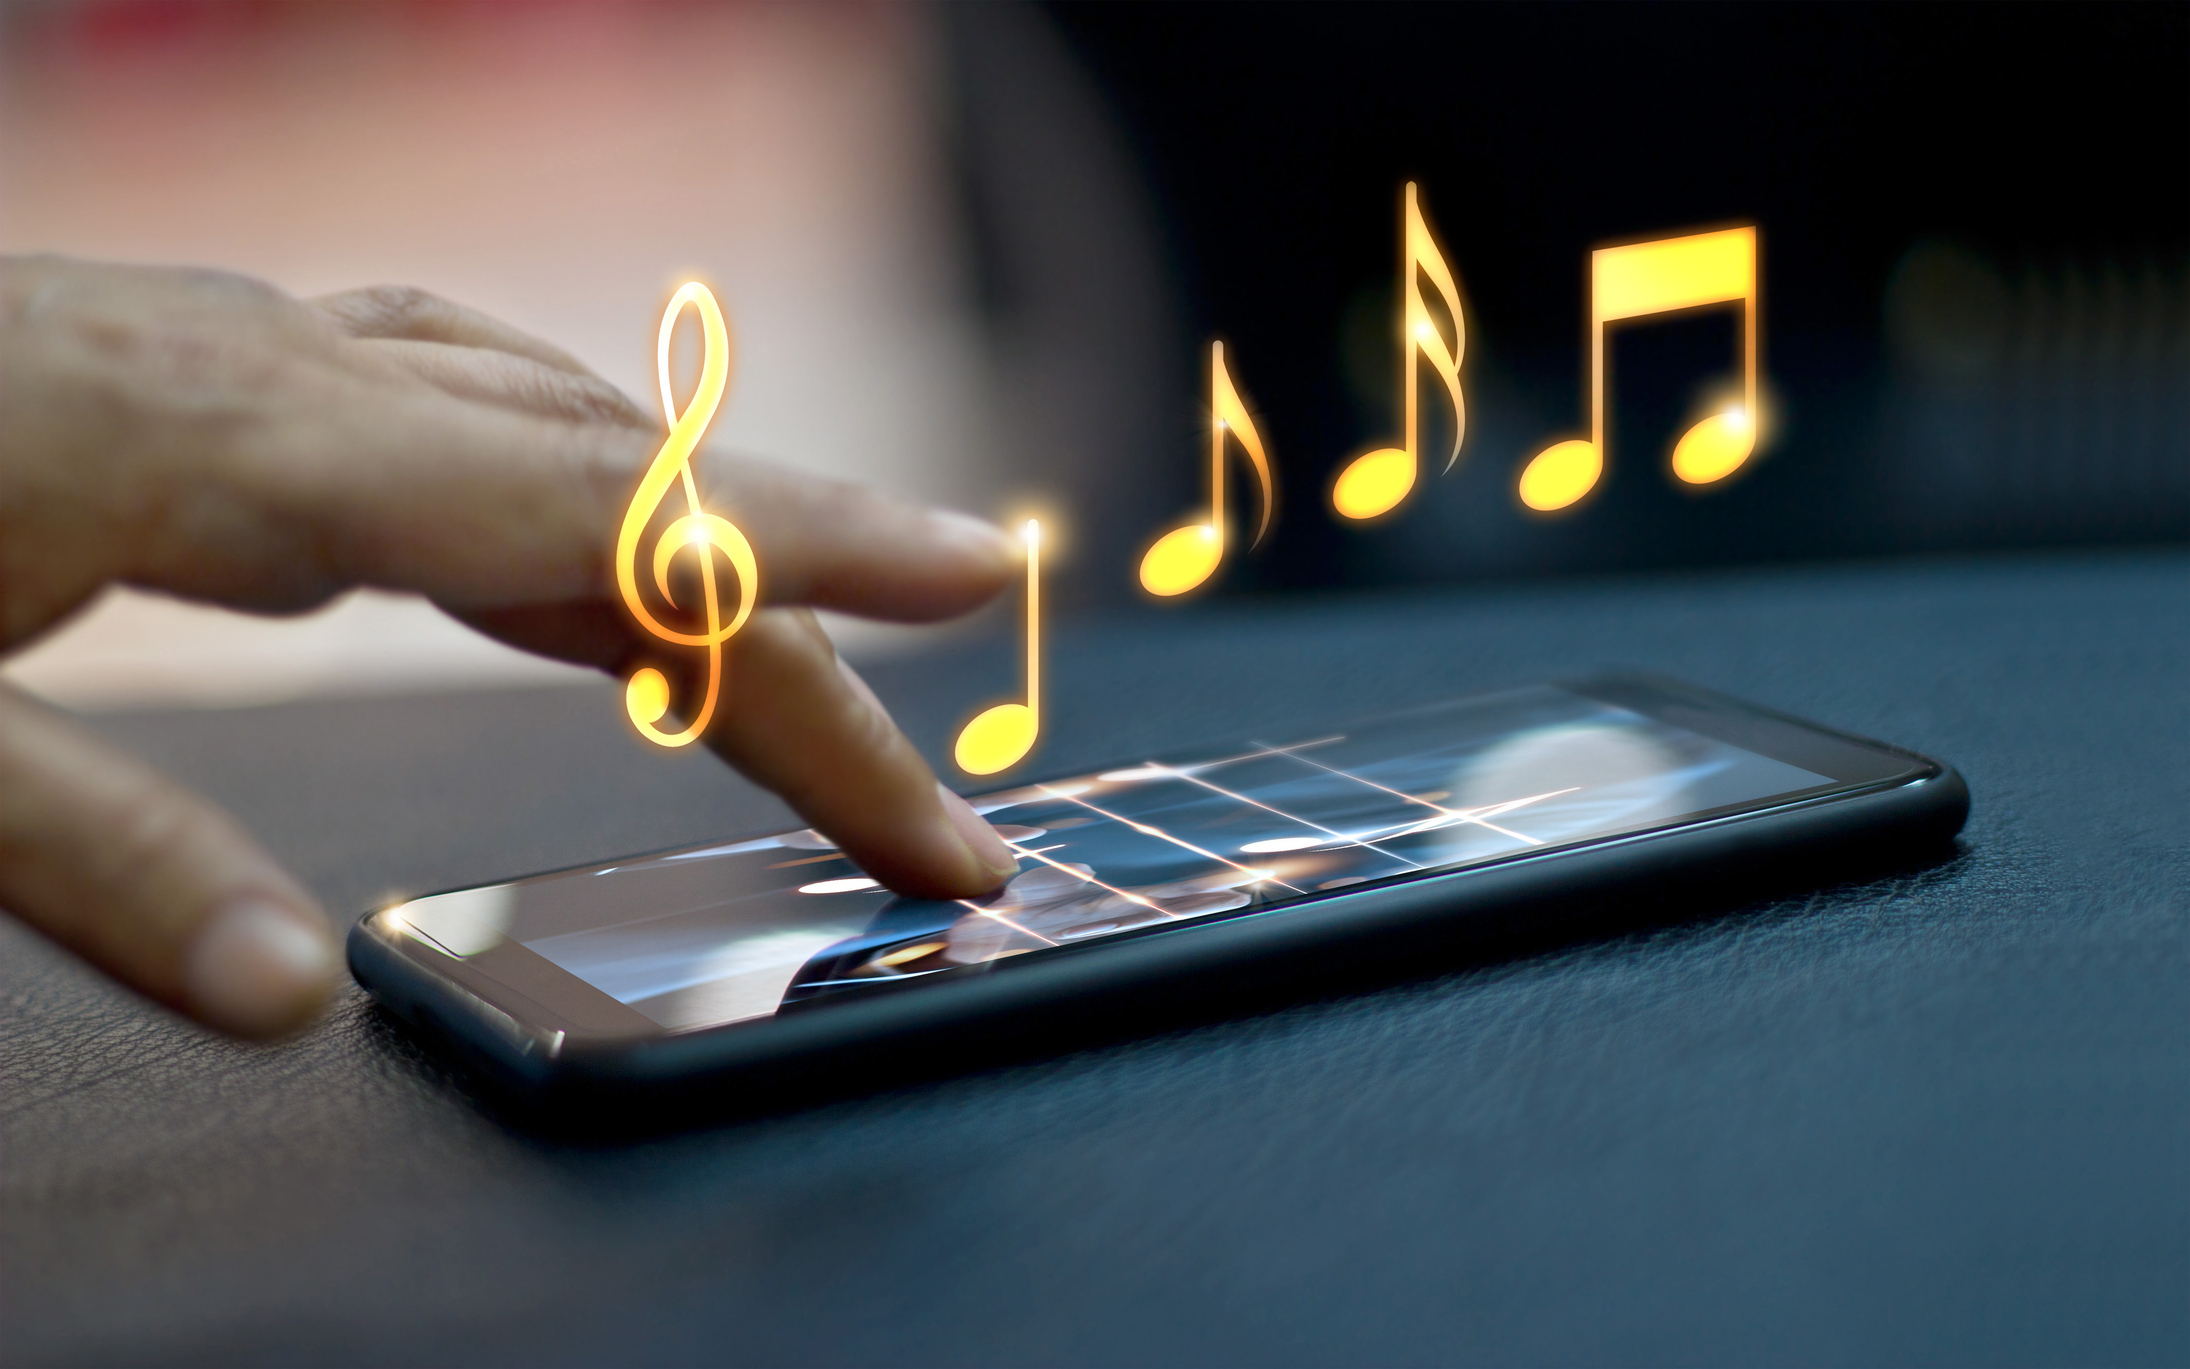 What does the Pandora and AdsWizz integration mean for the audio advertising marketplace?